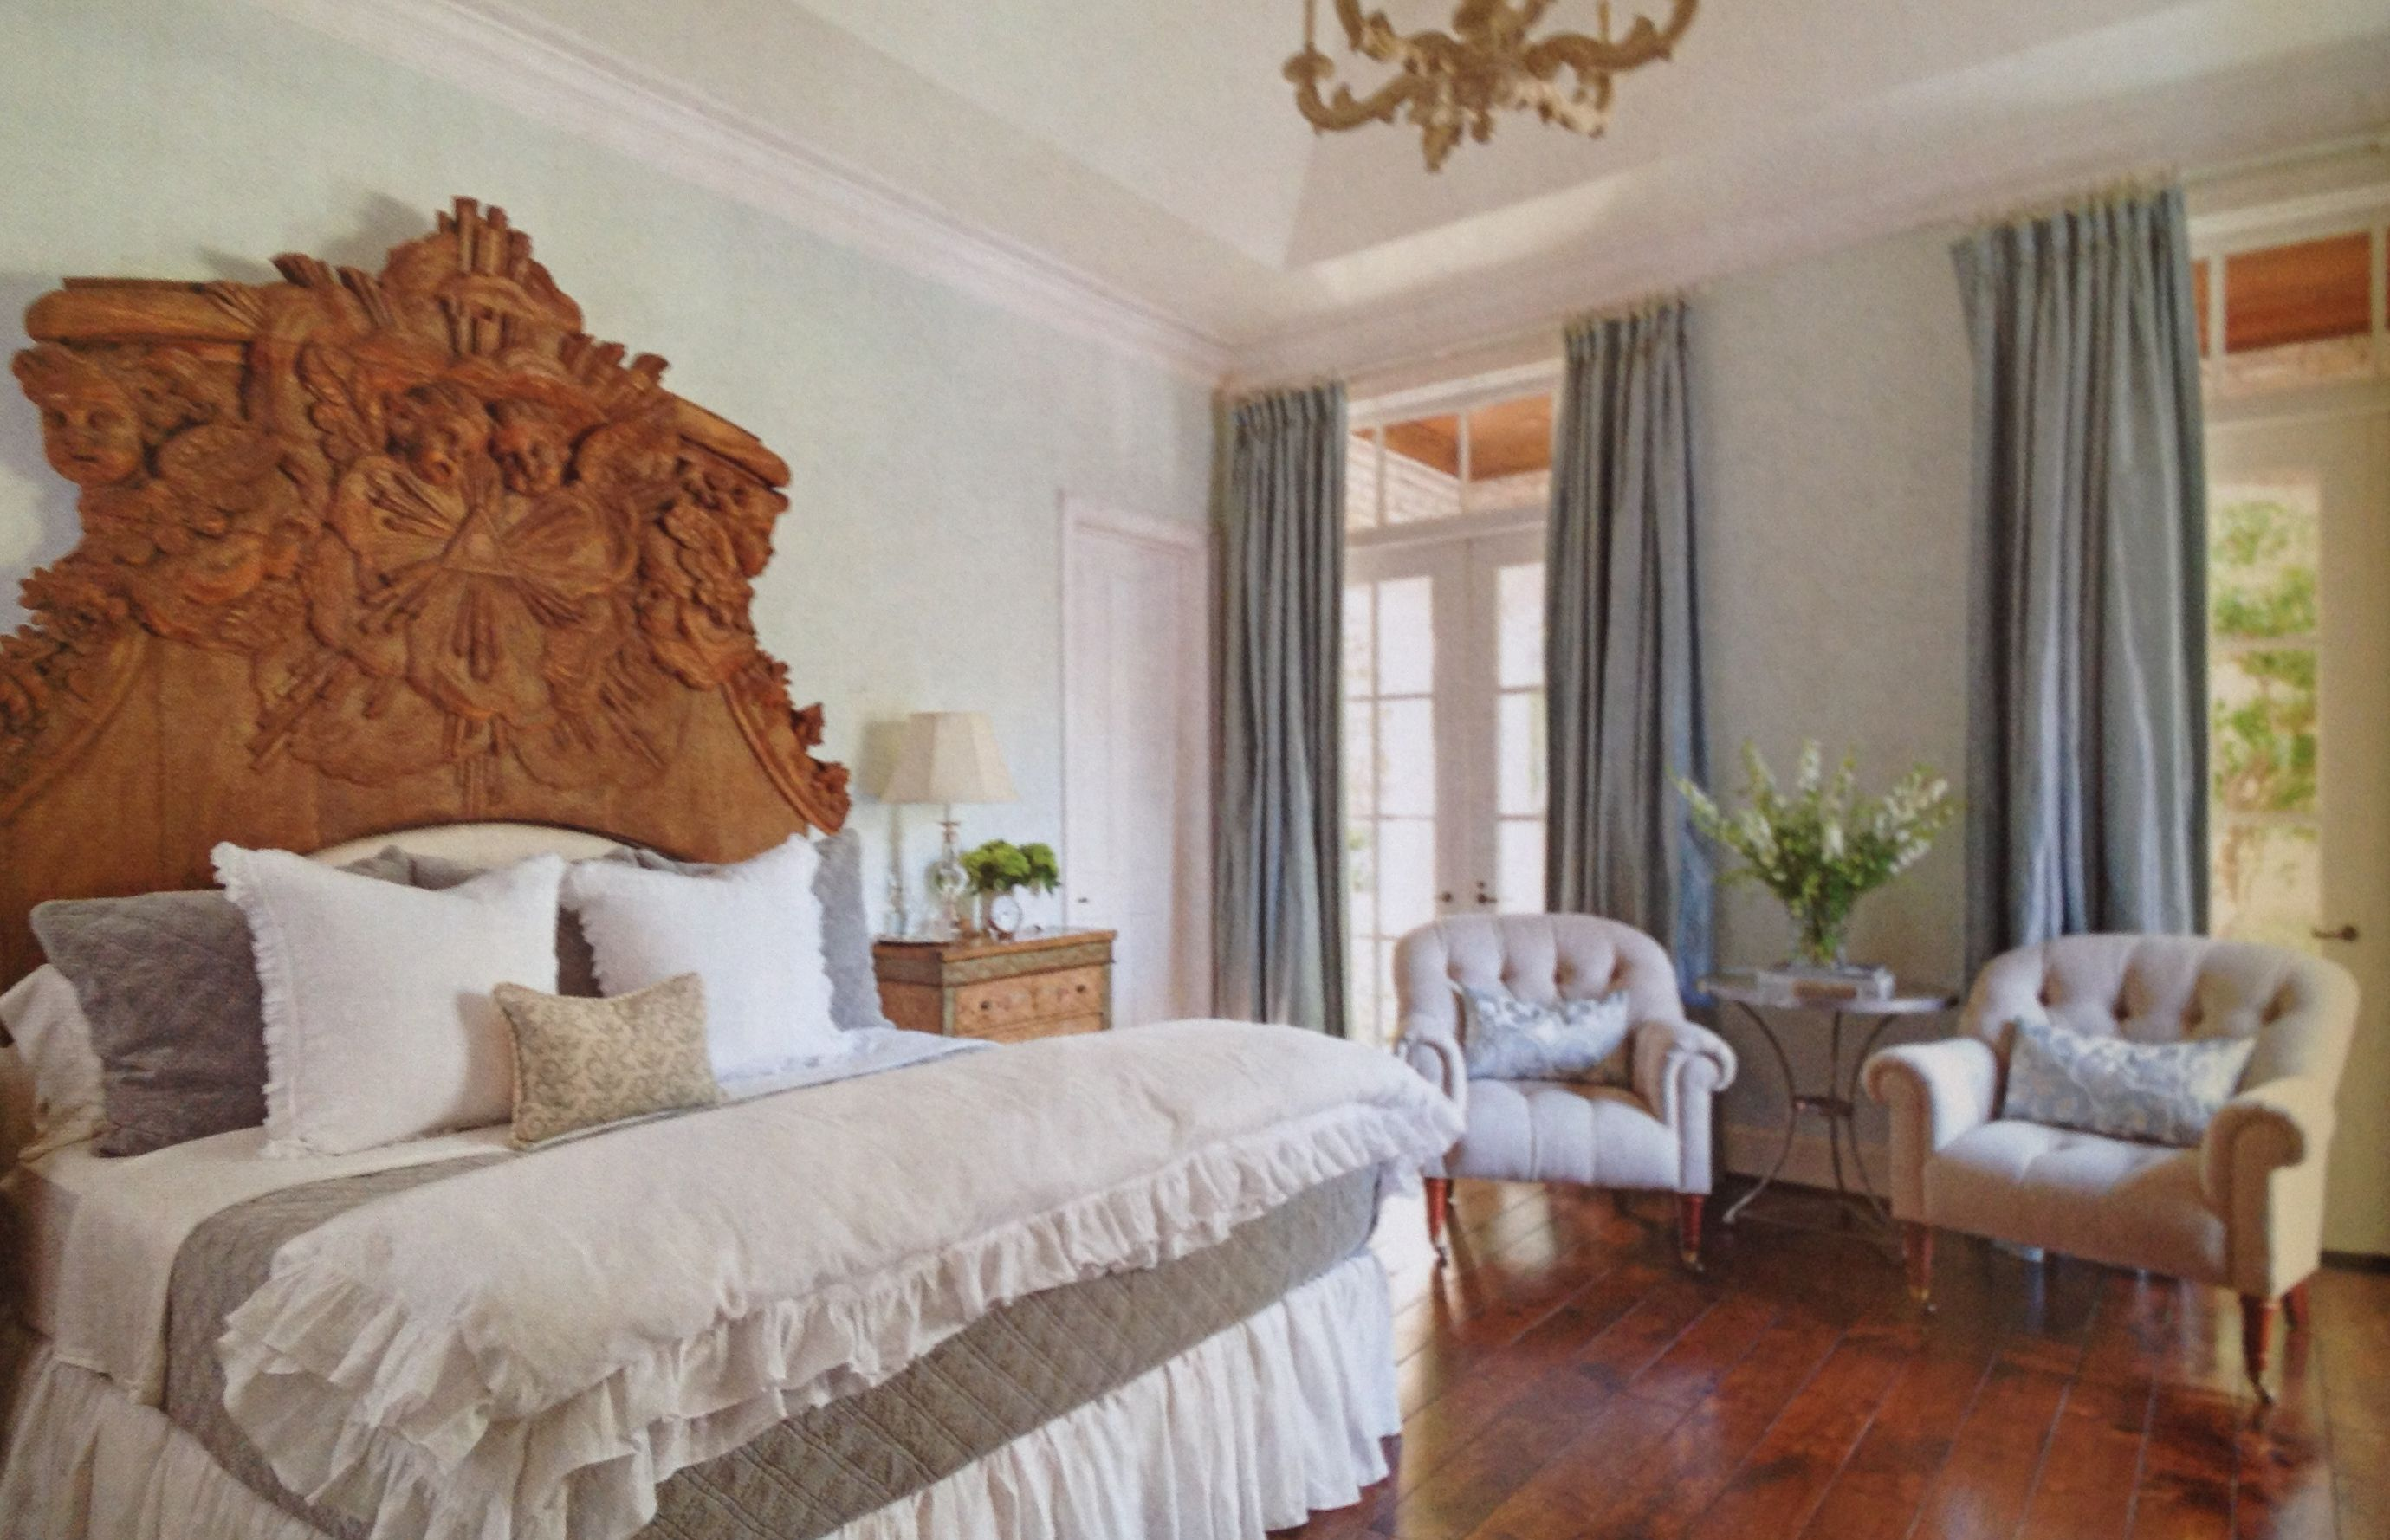 Lovely Country French bedroom